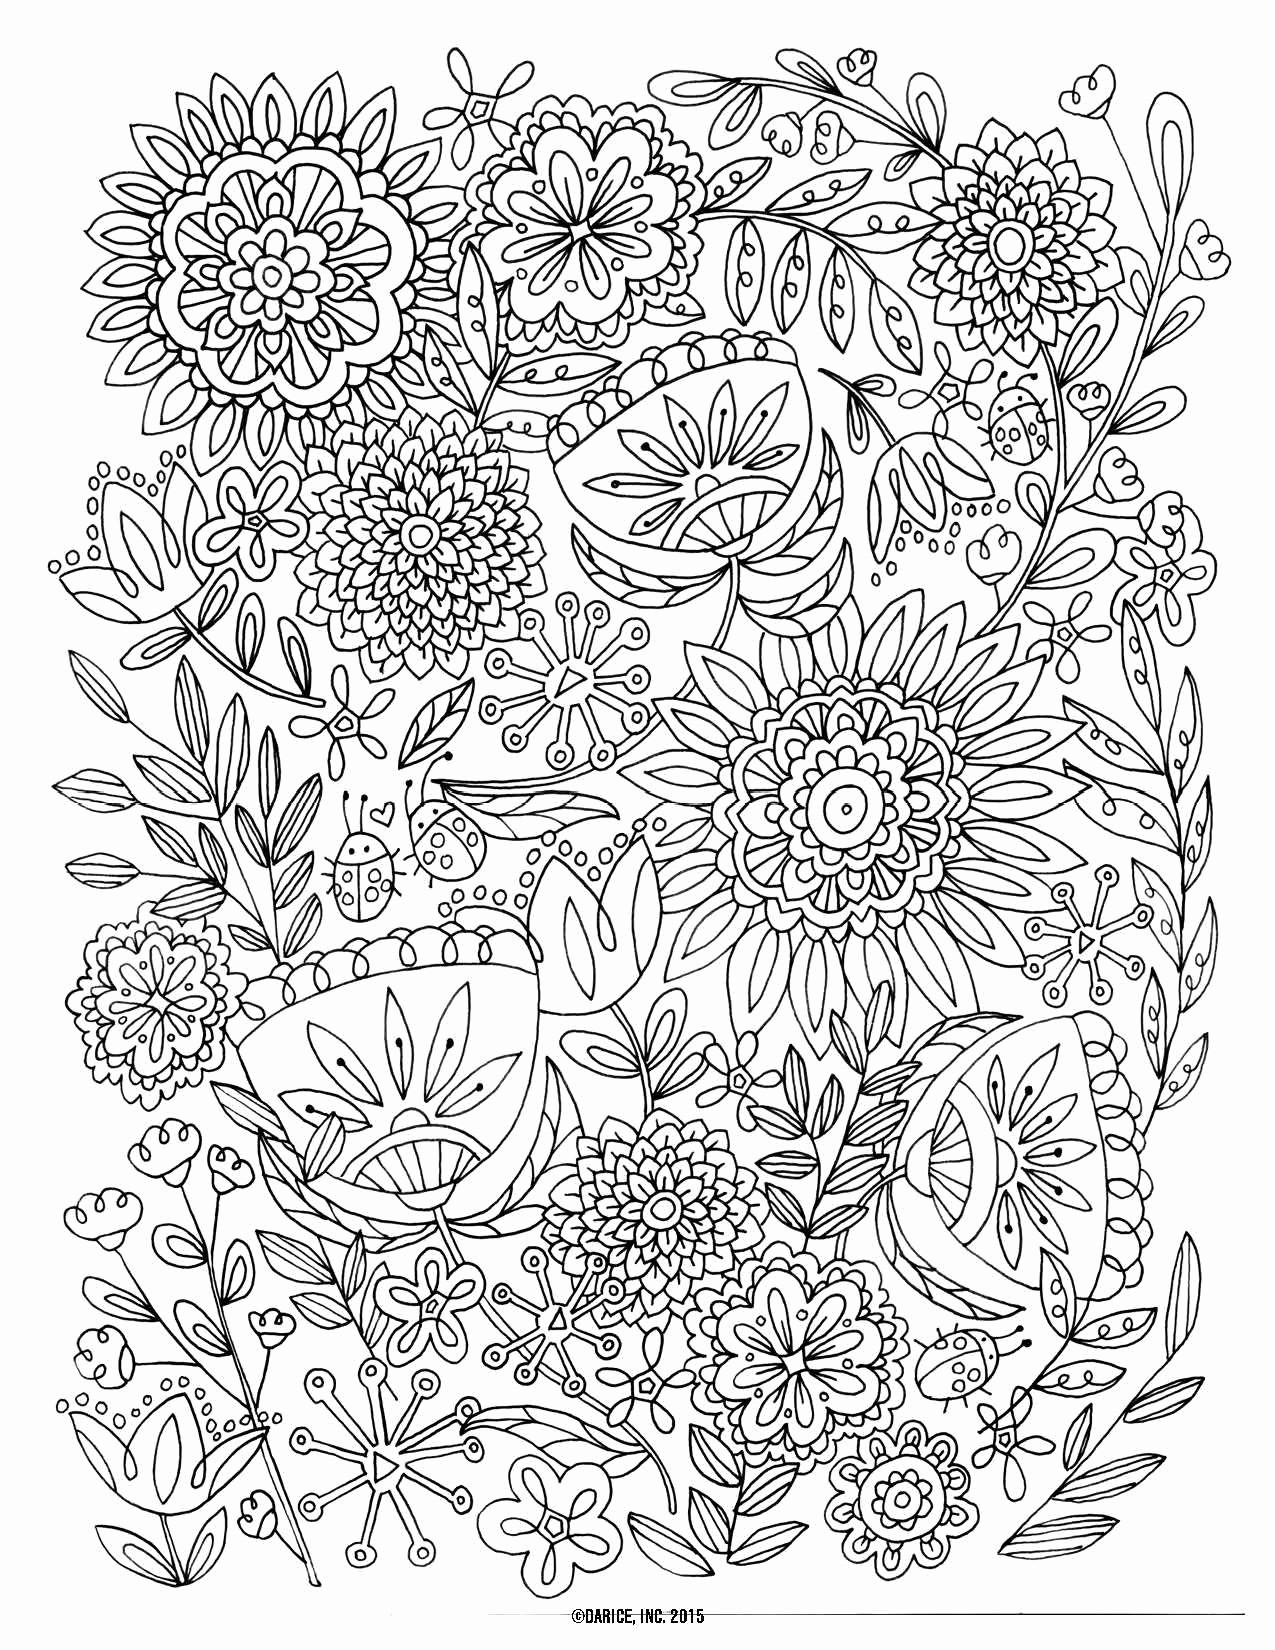 Edgar Allan Poe Coloring Pages  Collection 15g - Save it to your computer